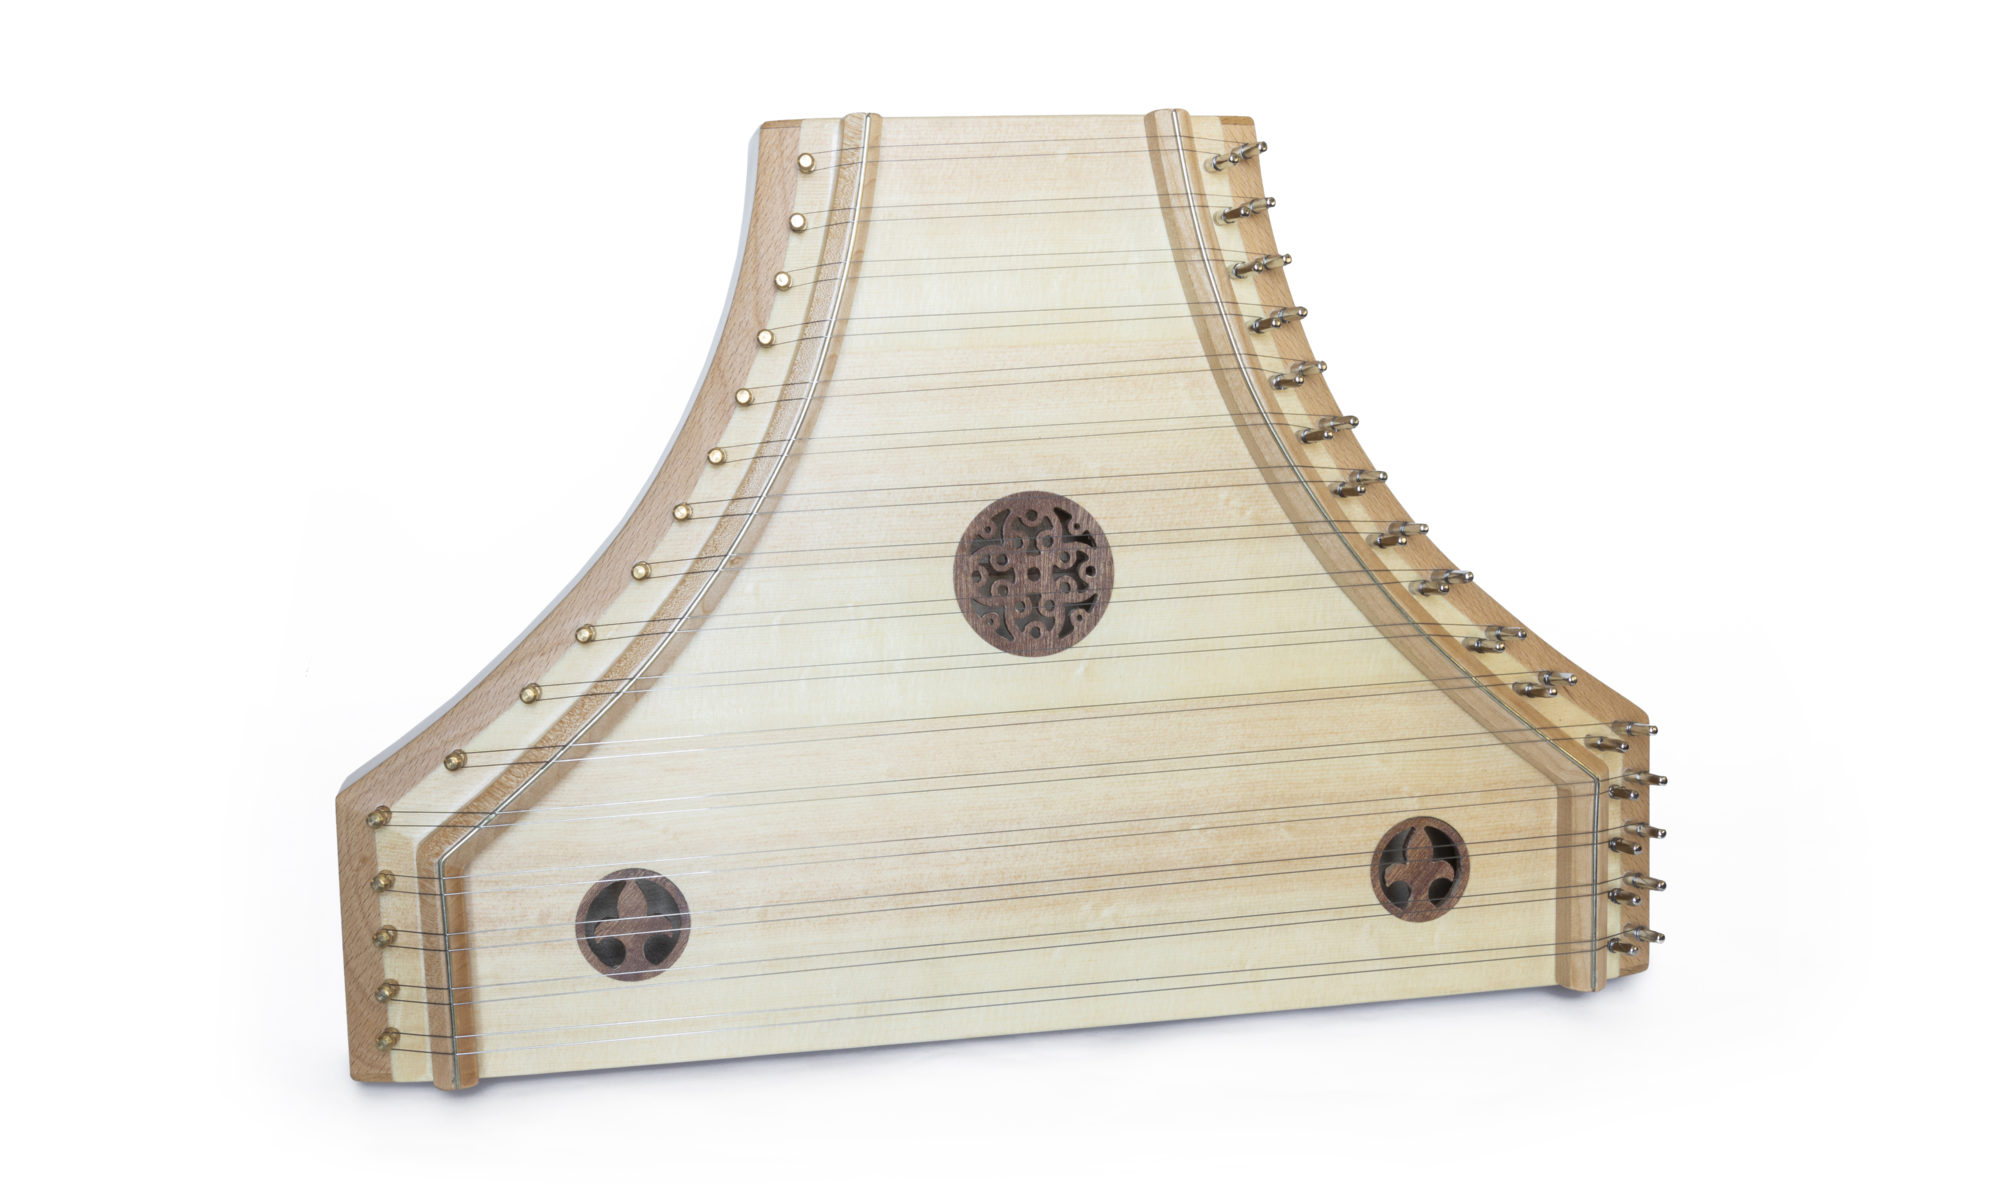 hog-nose psaltery